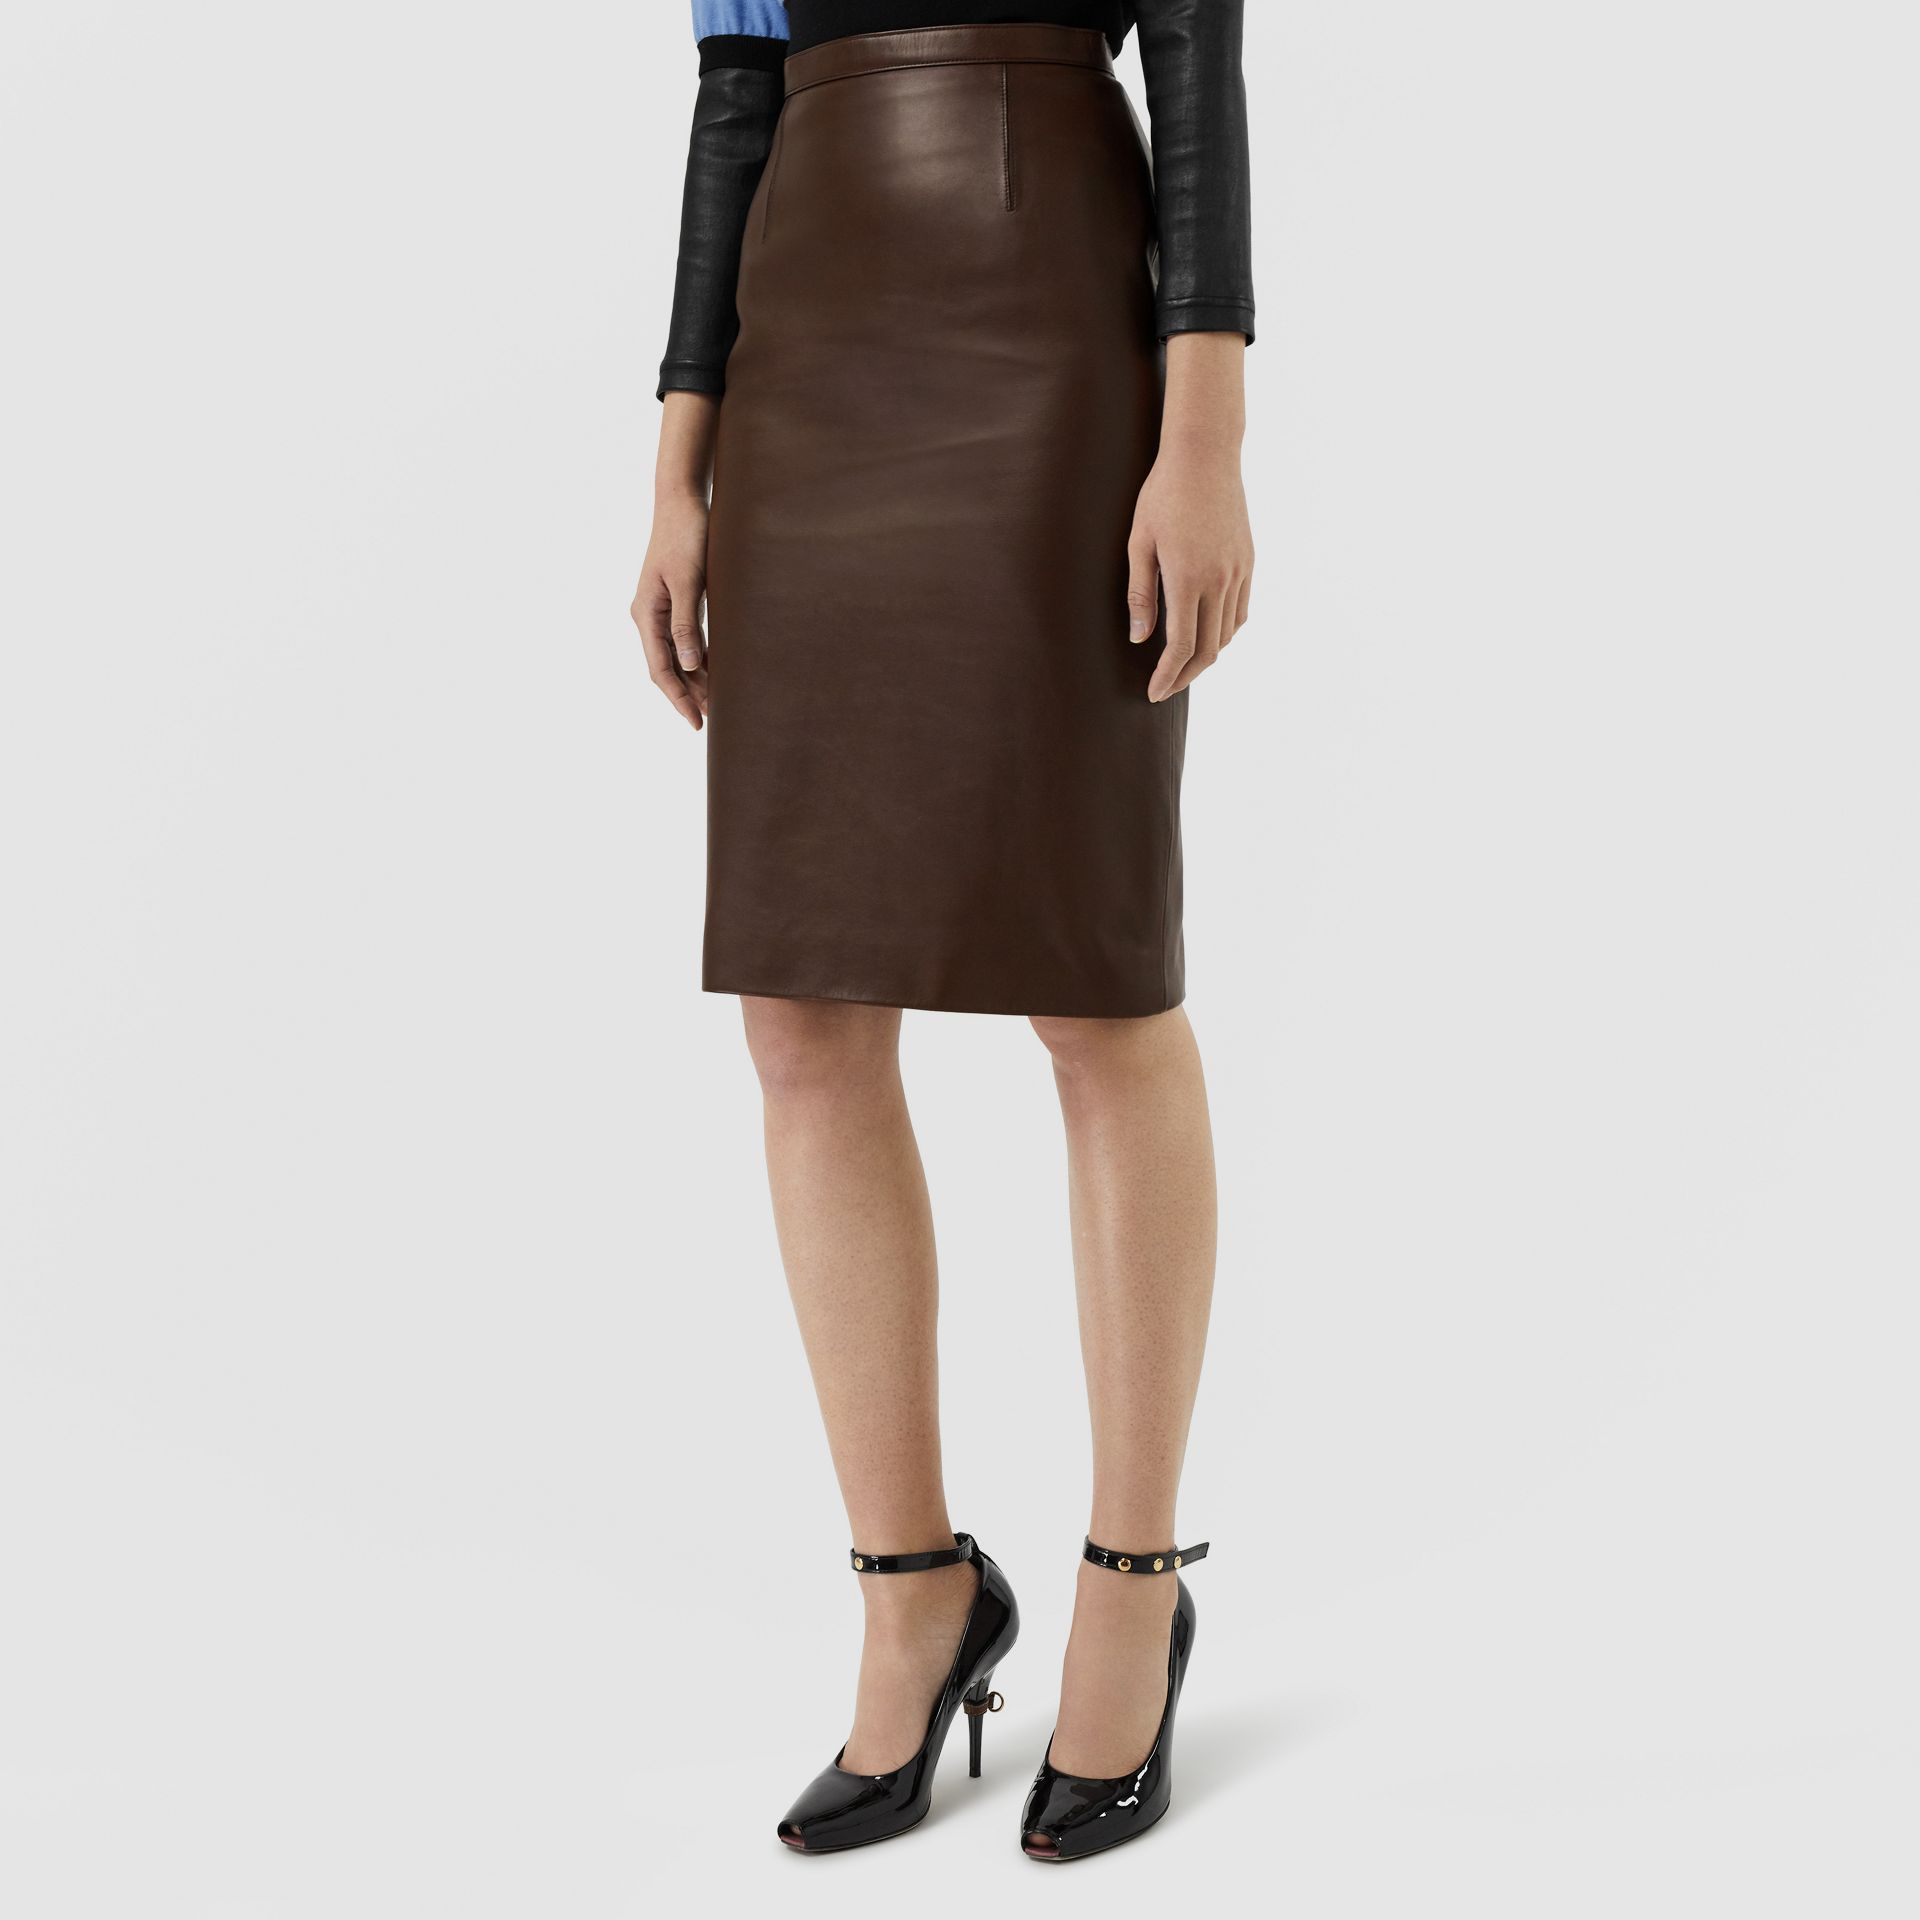 Lambskin Pencil Skirt in Mahogany - Women | Burberry - gallery image 4